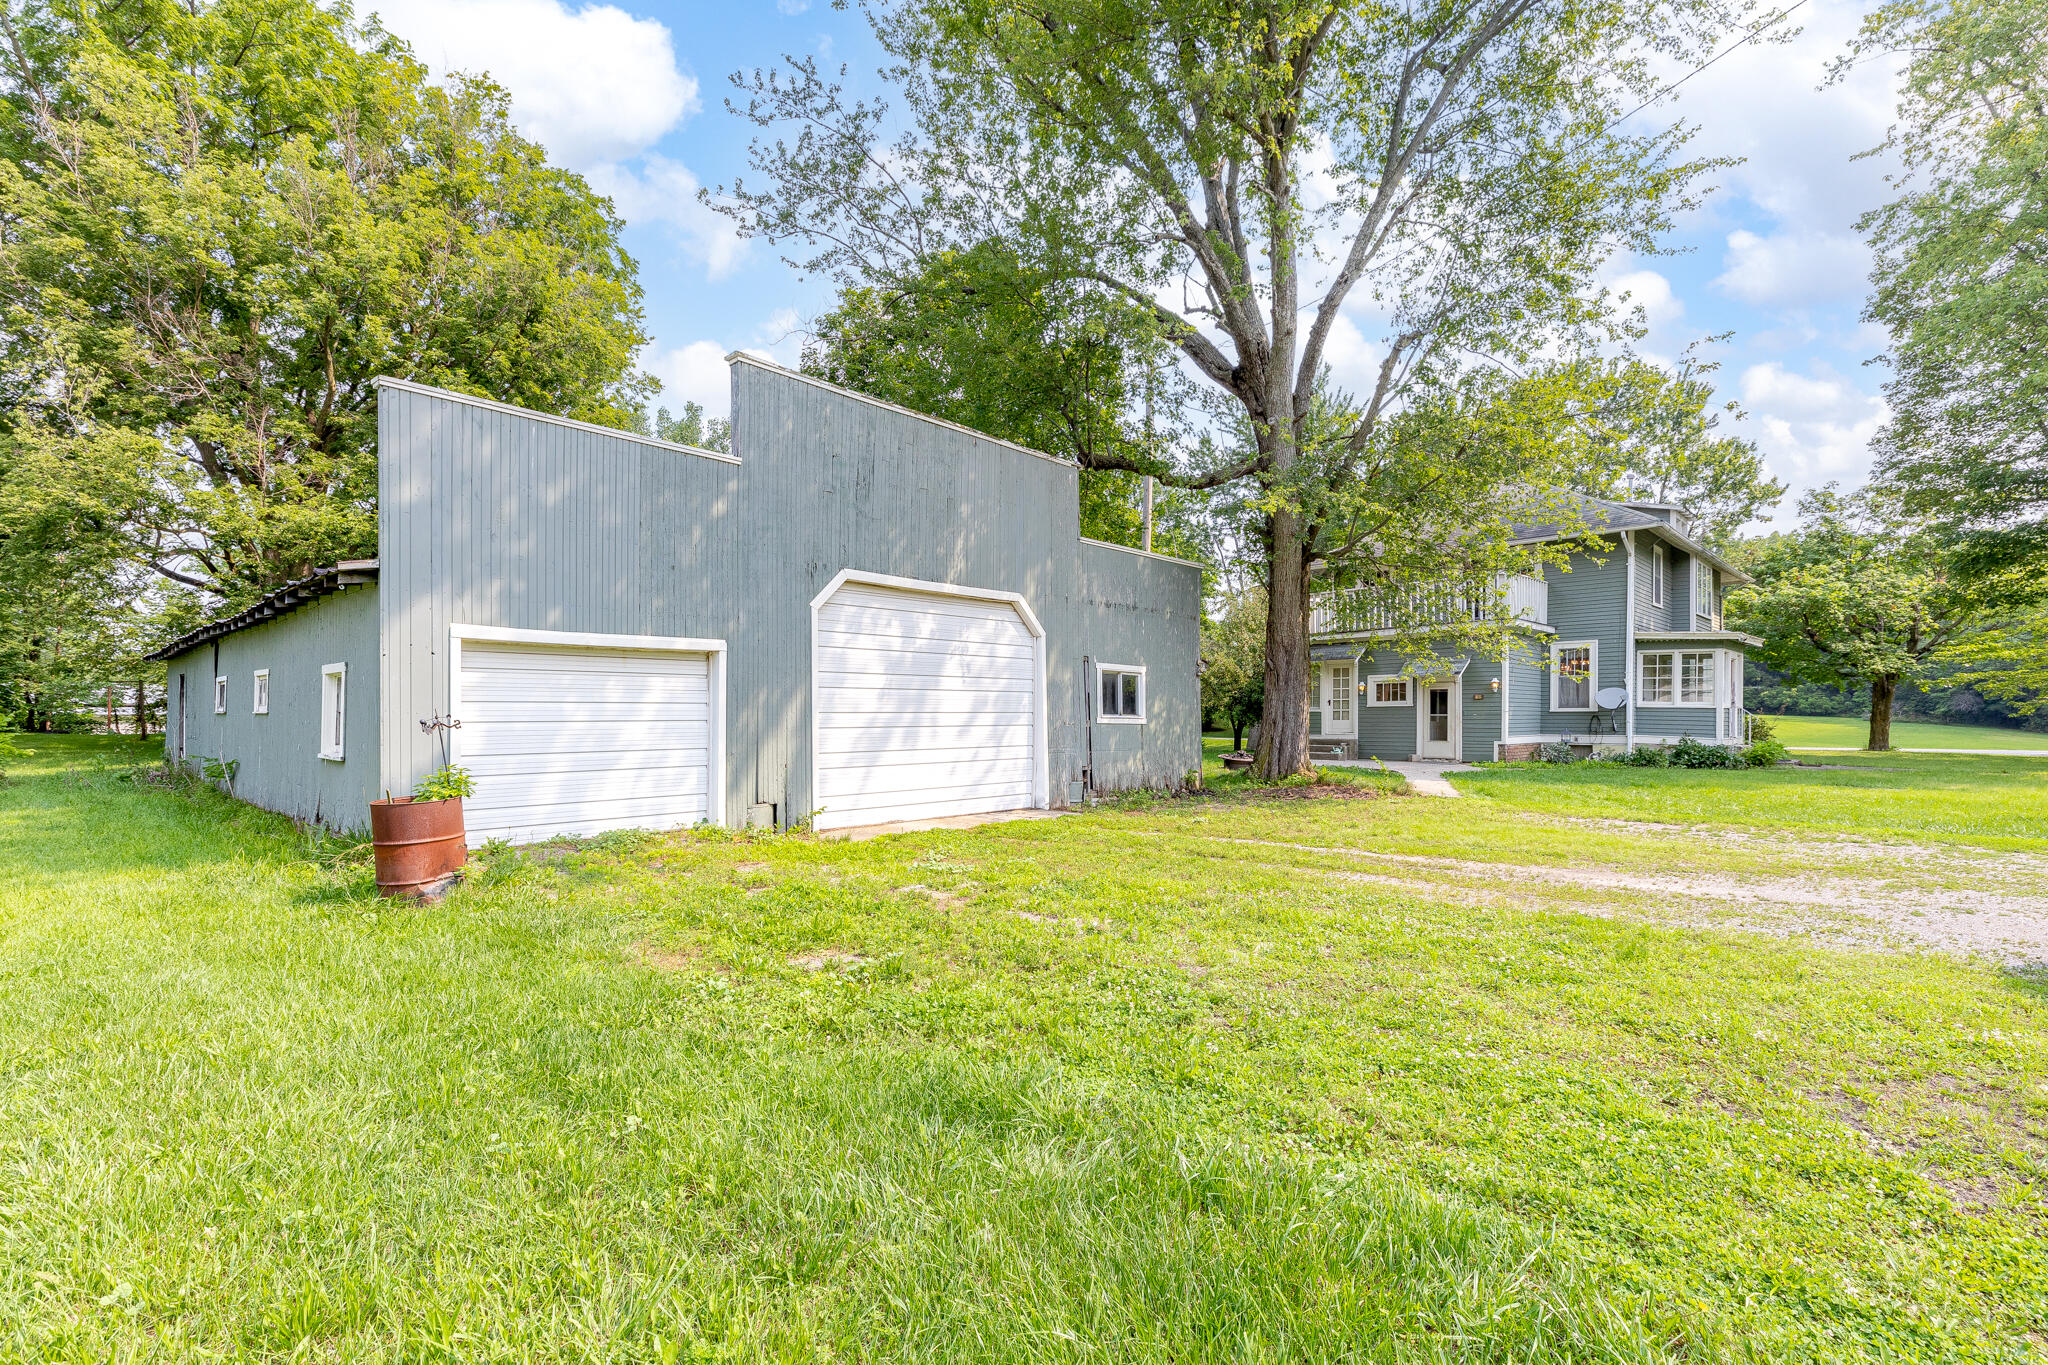 Photo 2 for 17821 Water St Roundhead, OH 43346